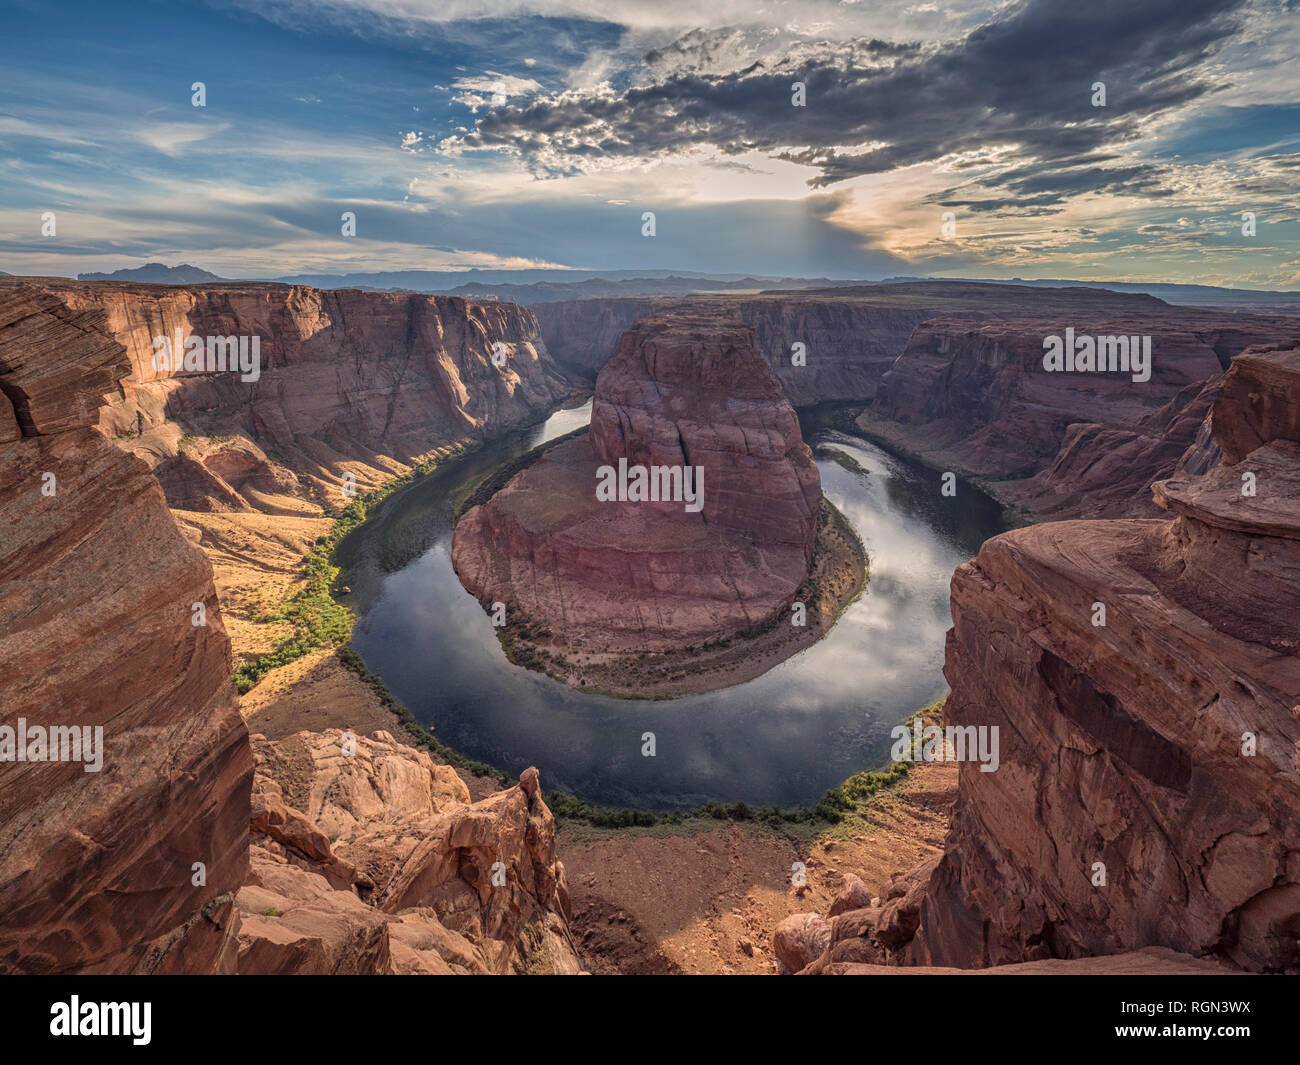 Stati Uniti d'America, Arizona, pagina, il Fiume Colorado, Glen Canyon National Recreation Area, piegare a ferro di cavallo Immagini Stock